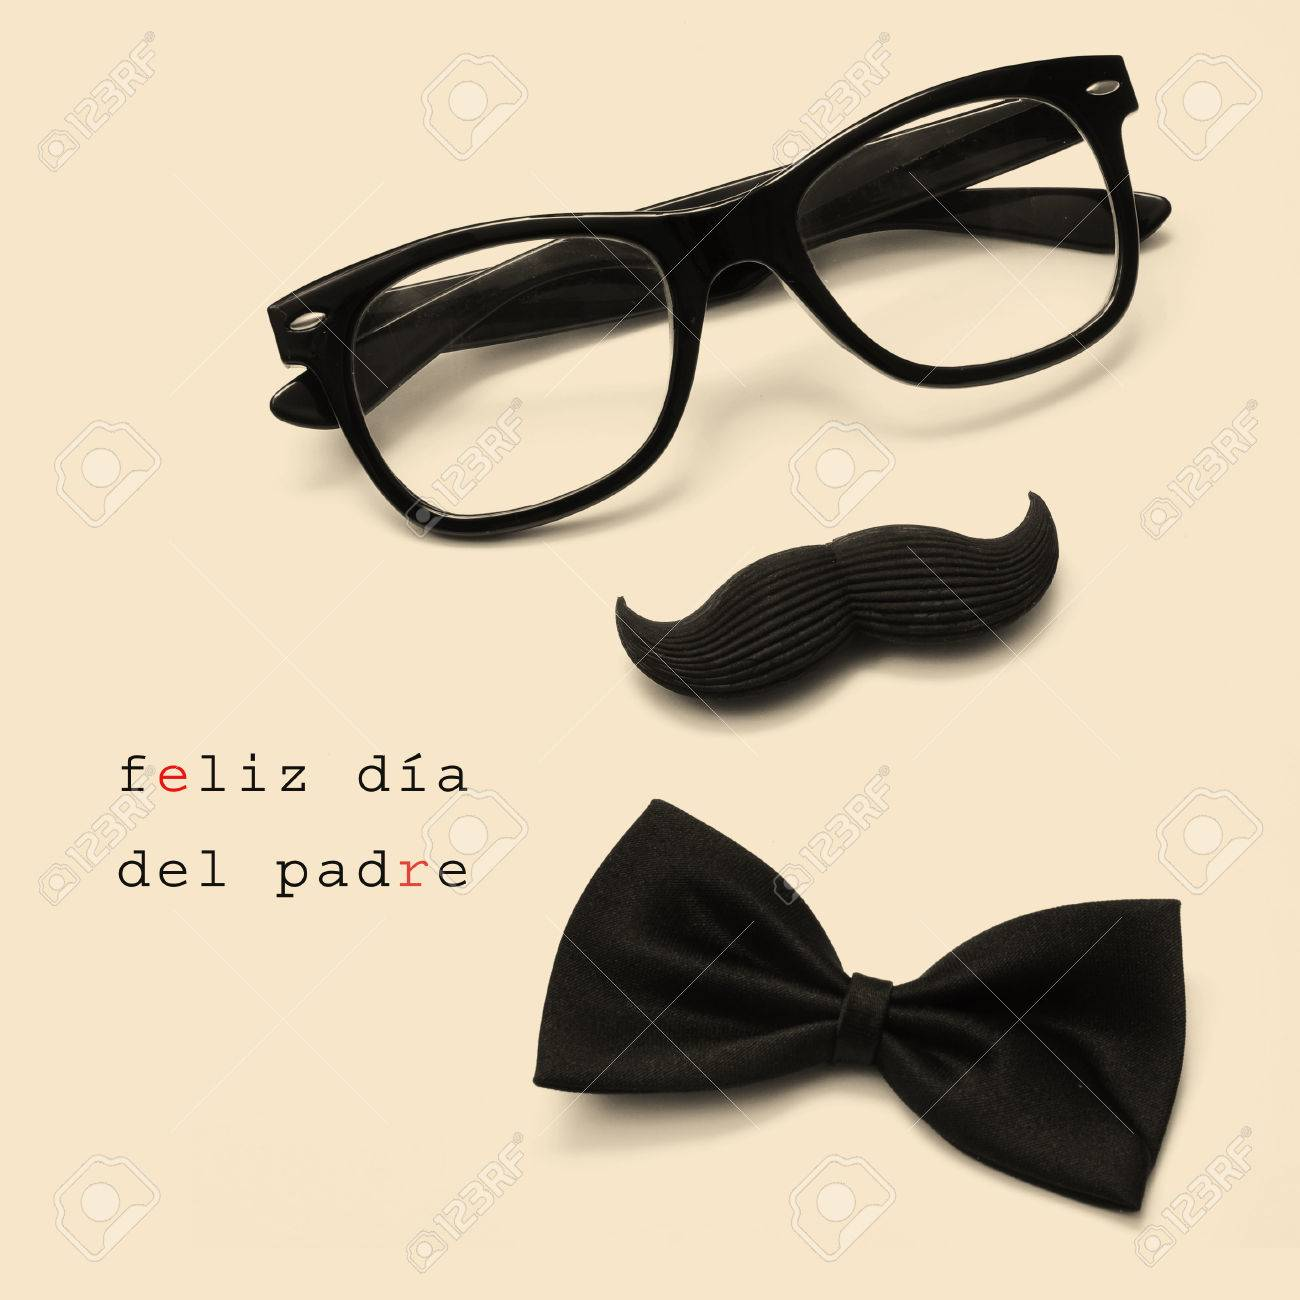 sentence feliz dia del padre, happy fathers day written in spanish, and glasses, mustache and bow tie forming a man face in a beige - 26372144